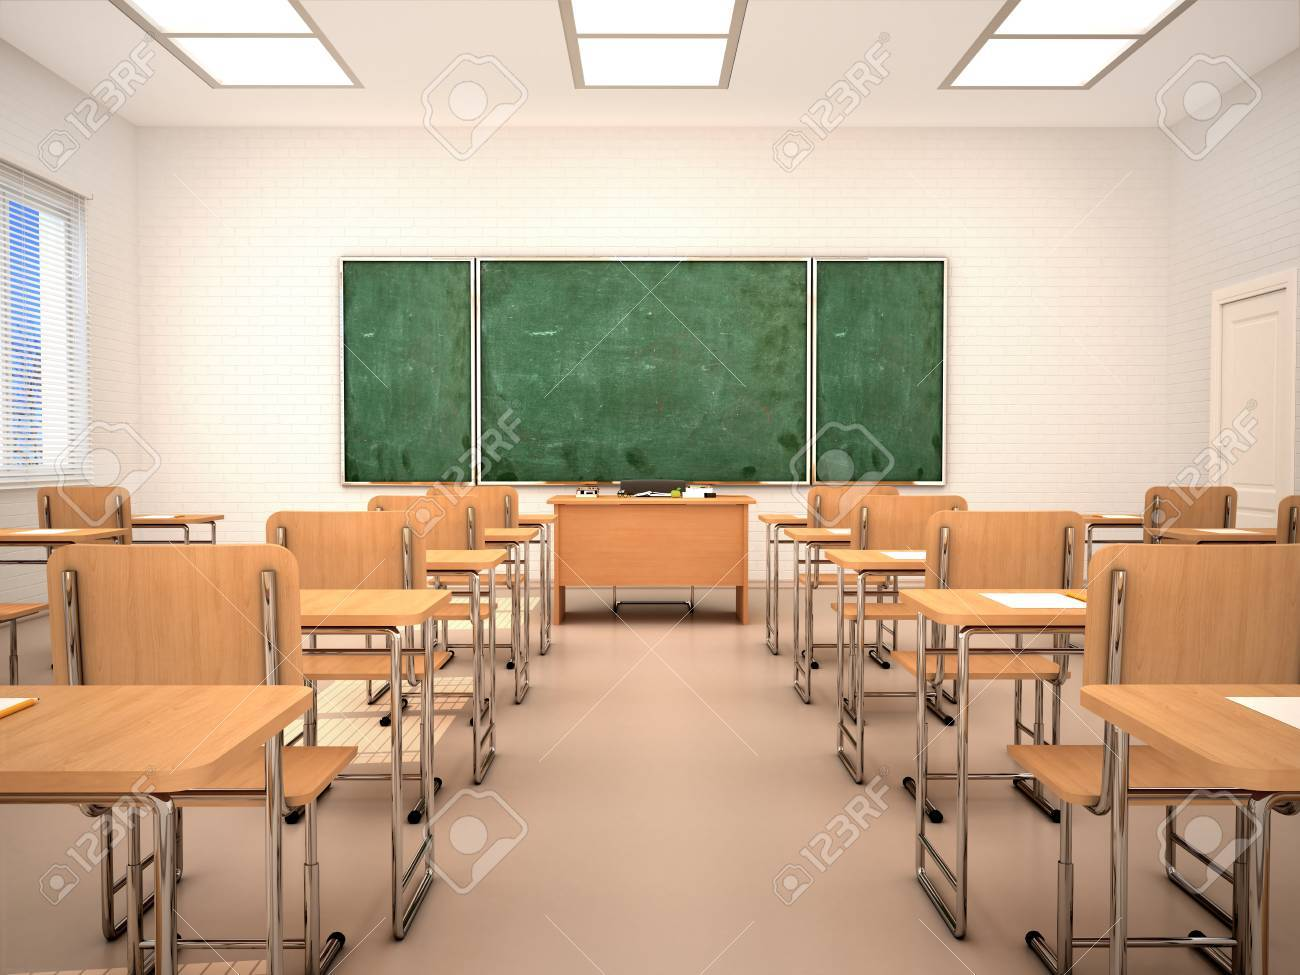 Bright Empty Classroom For Lessons And Training. 3d Illustration. Stock  Photo, Picture And Royalty Free Image. Image 69367324.